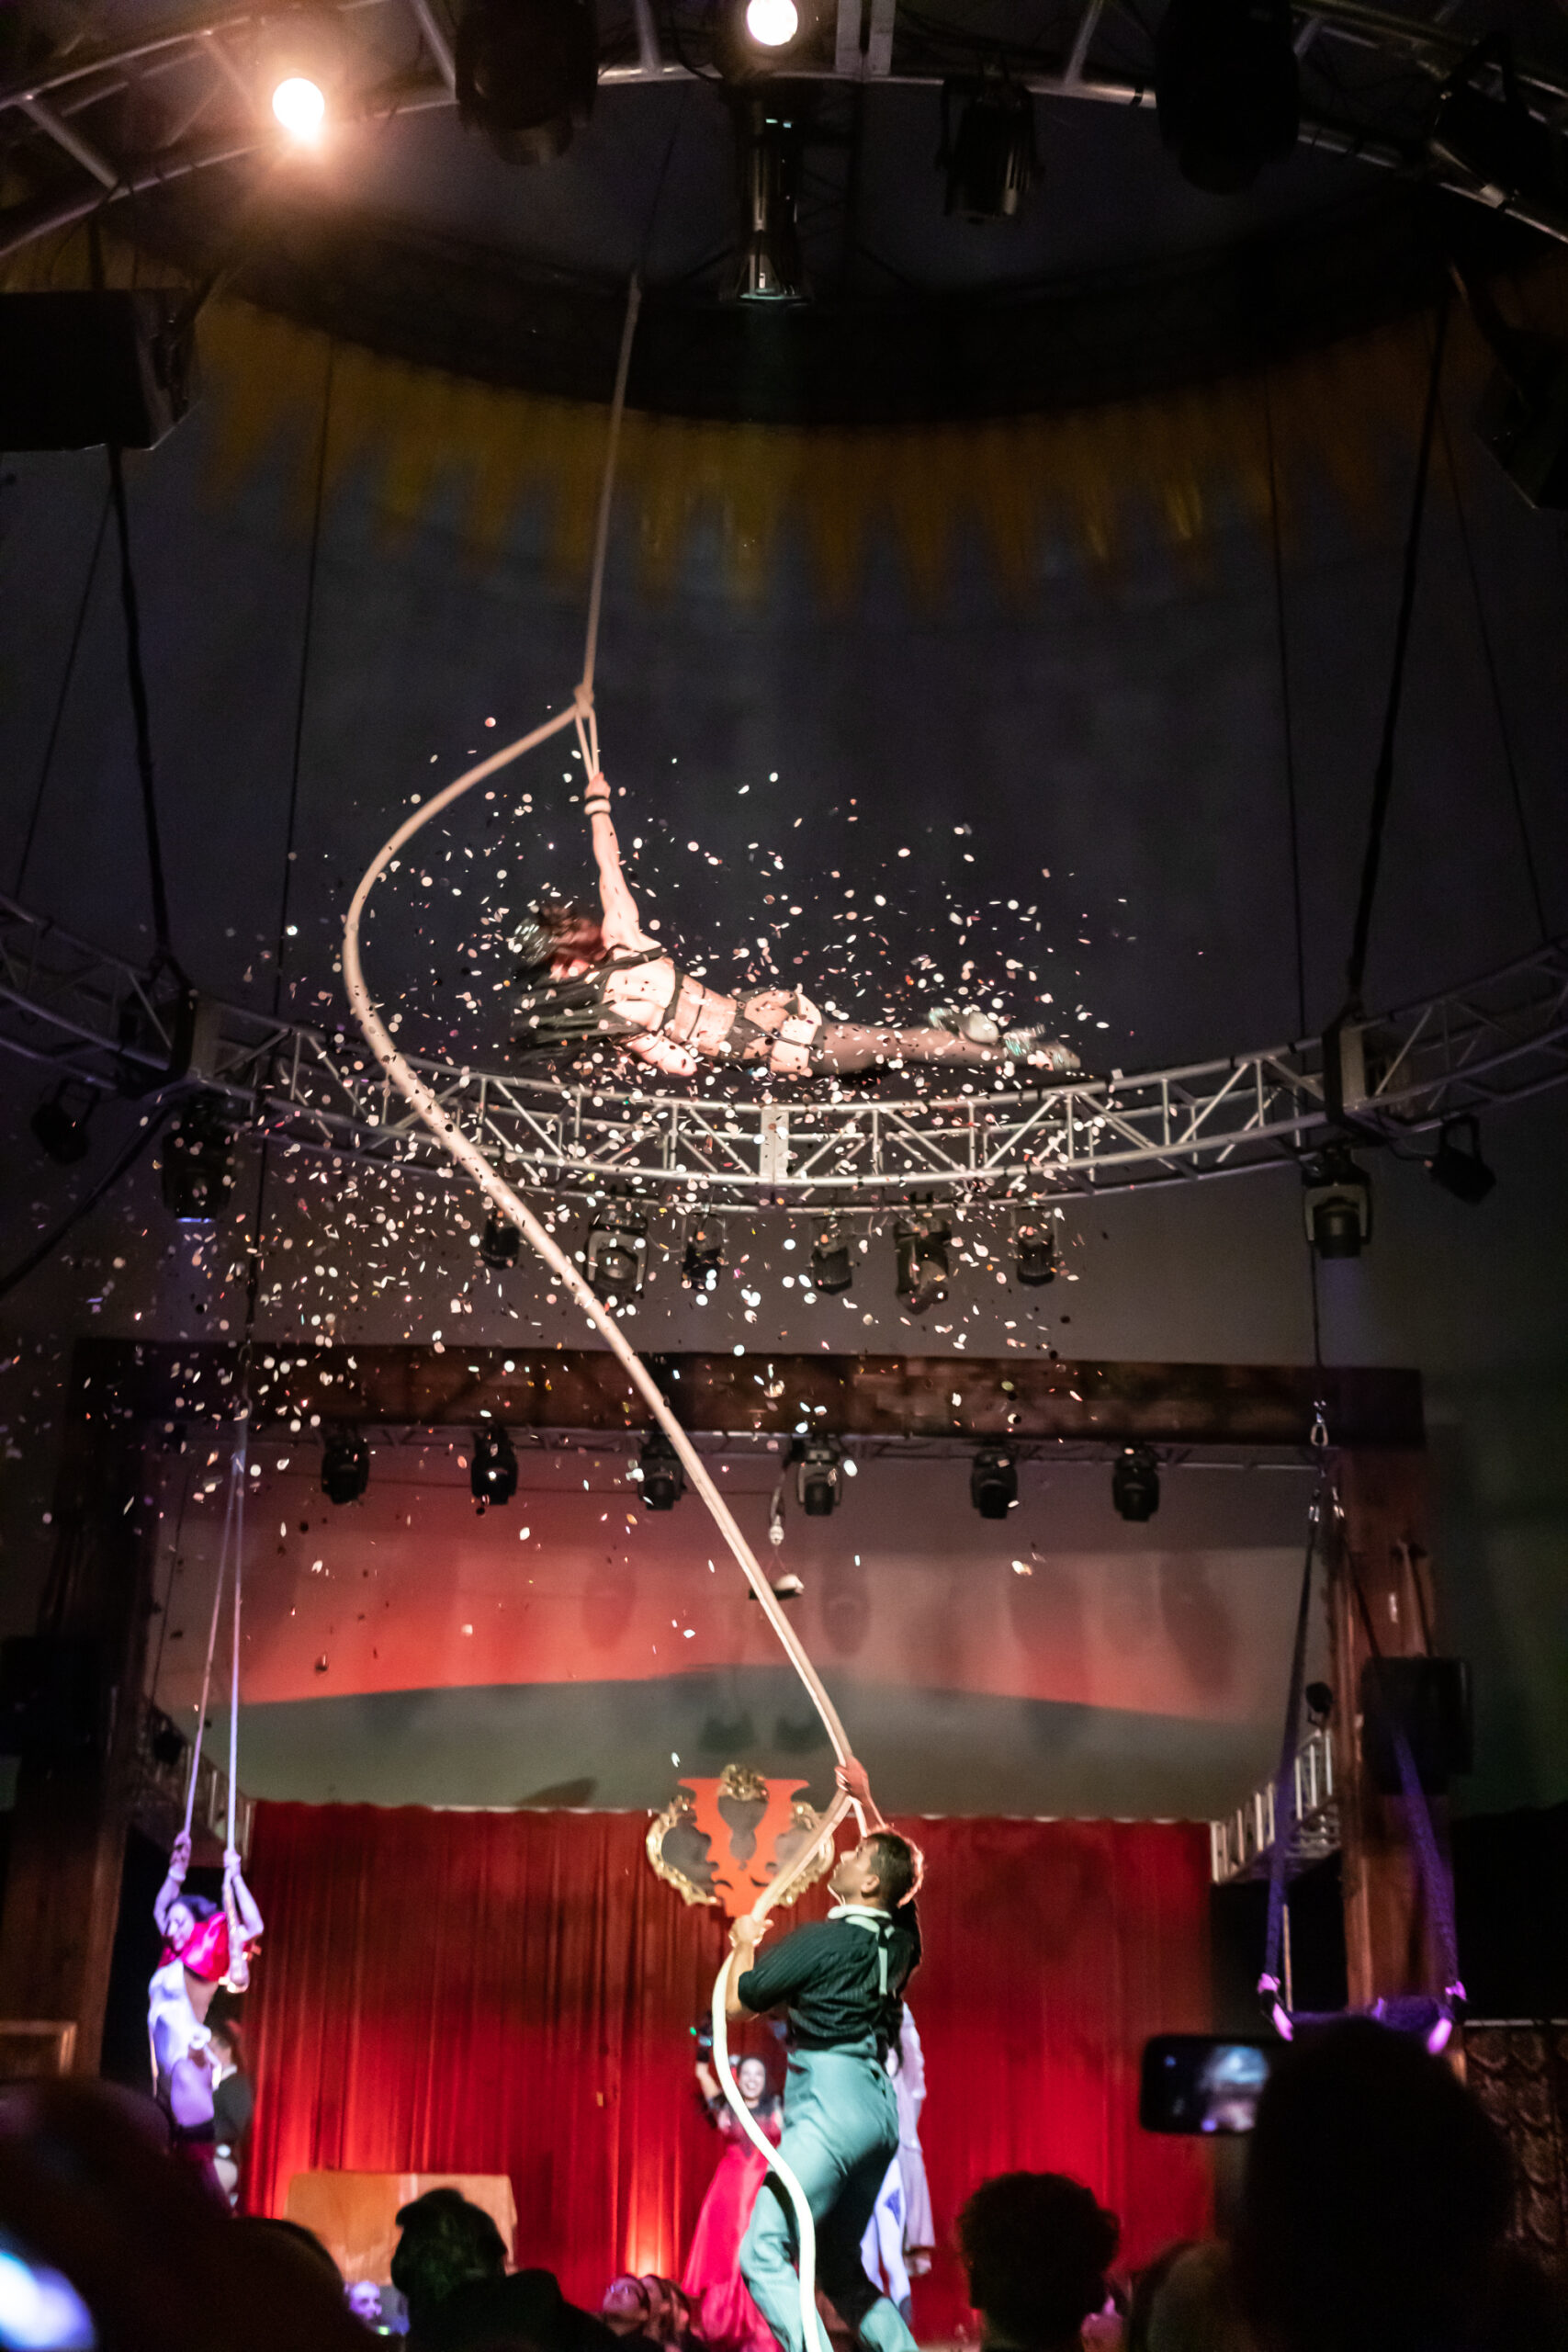 Image of Dwoira Galilea and Mikey the Rigger performing at Vau de Vire's The Soiled Dove dinner theater Under the Tortona Big Top in Downtown Oakland